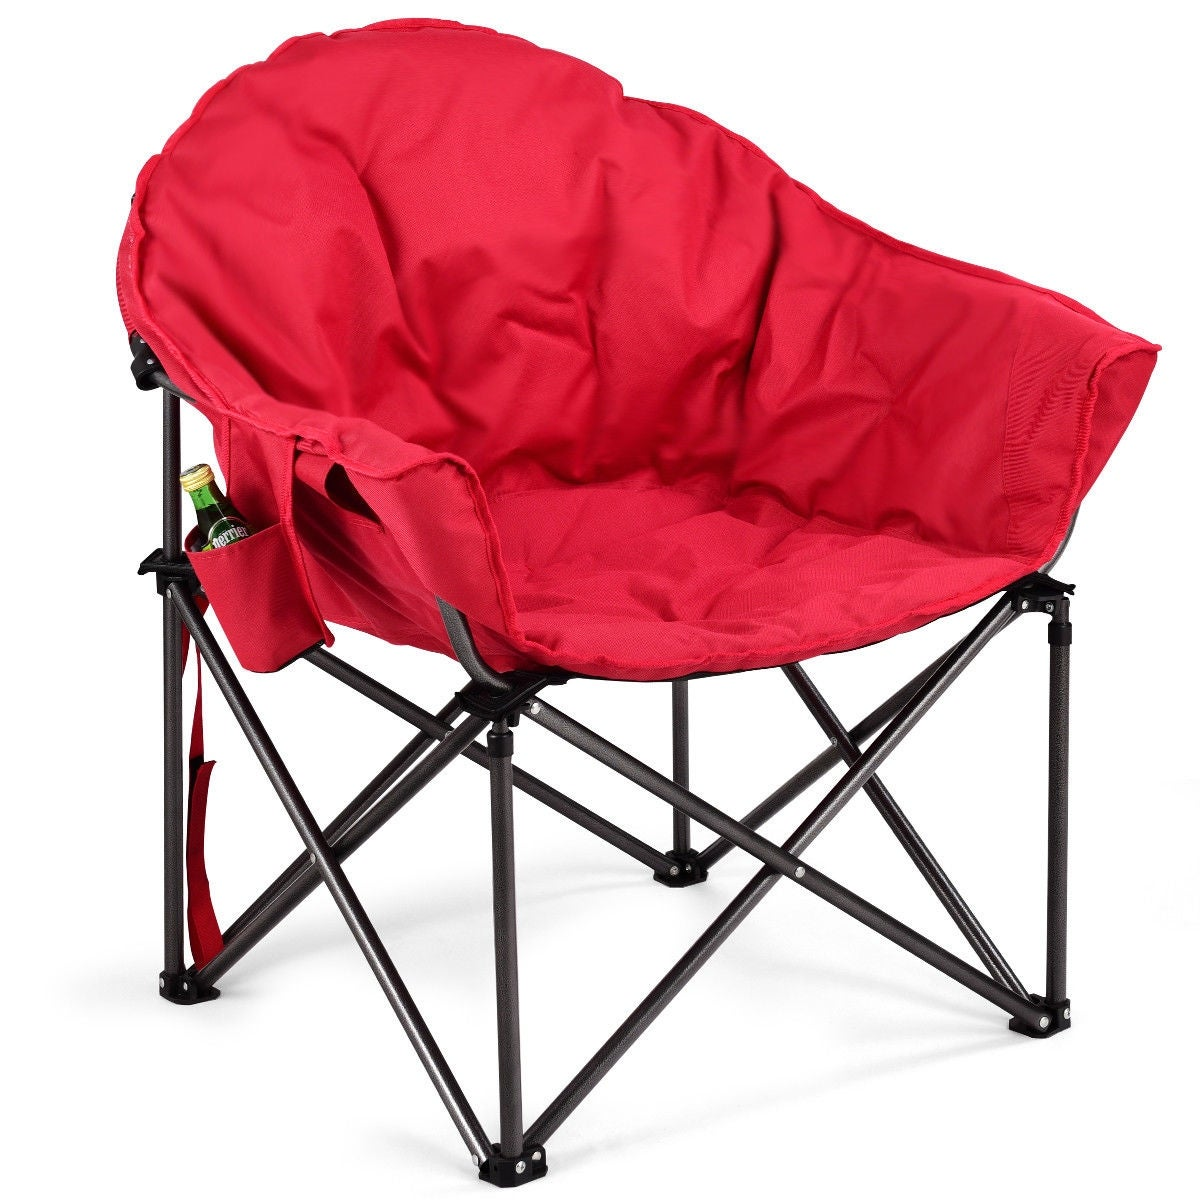 Costway Oversized Saucer Moon Folding Camping Chair Padded Seat W Cup Holder Carry Bag